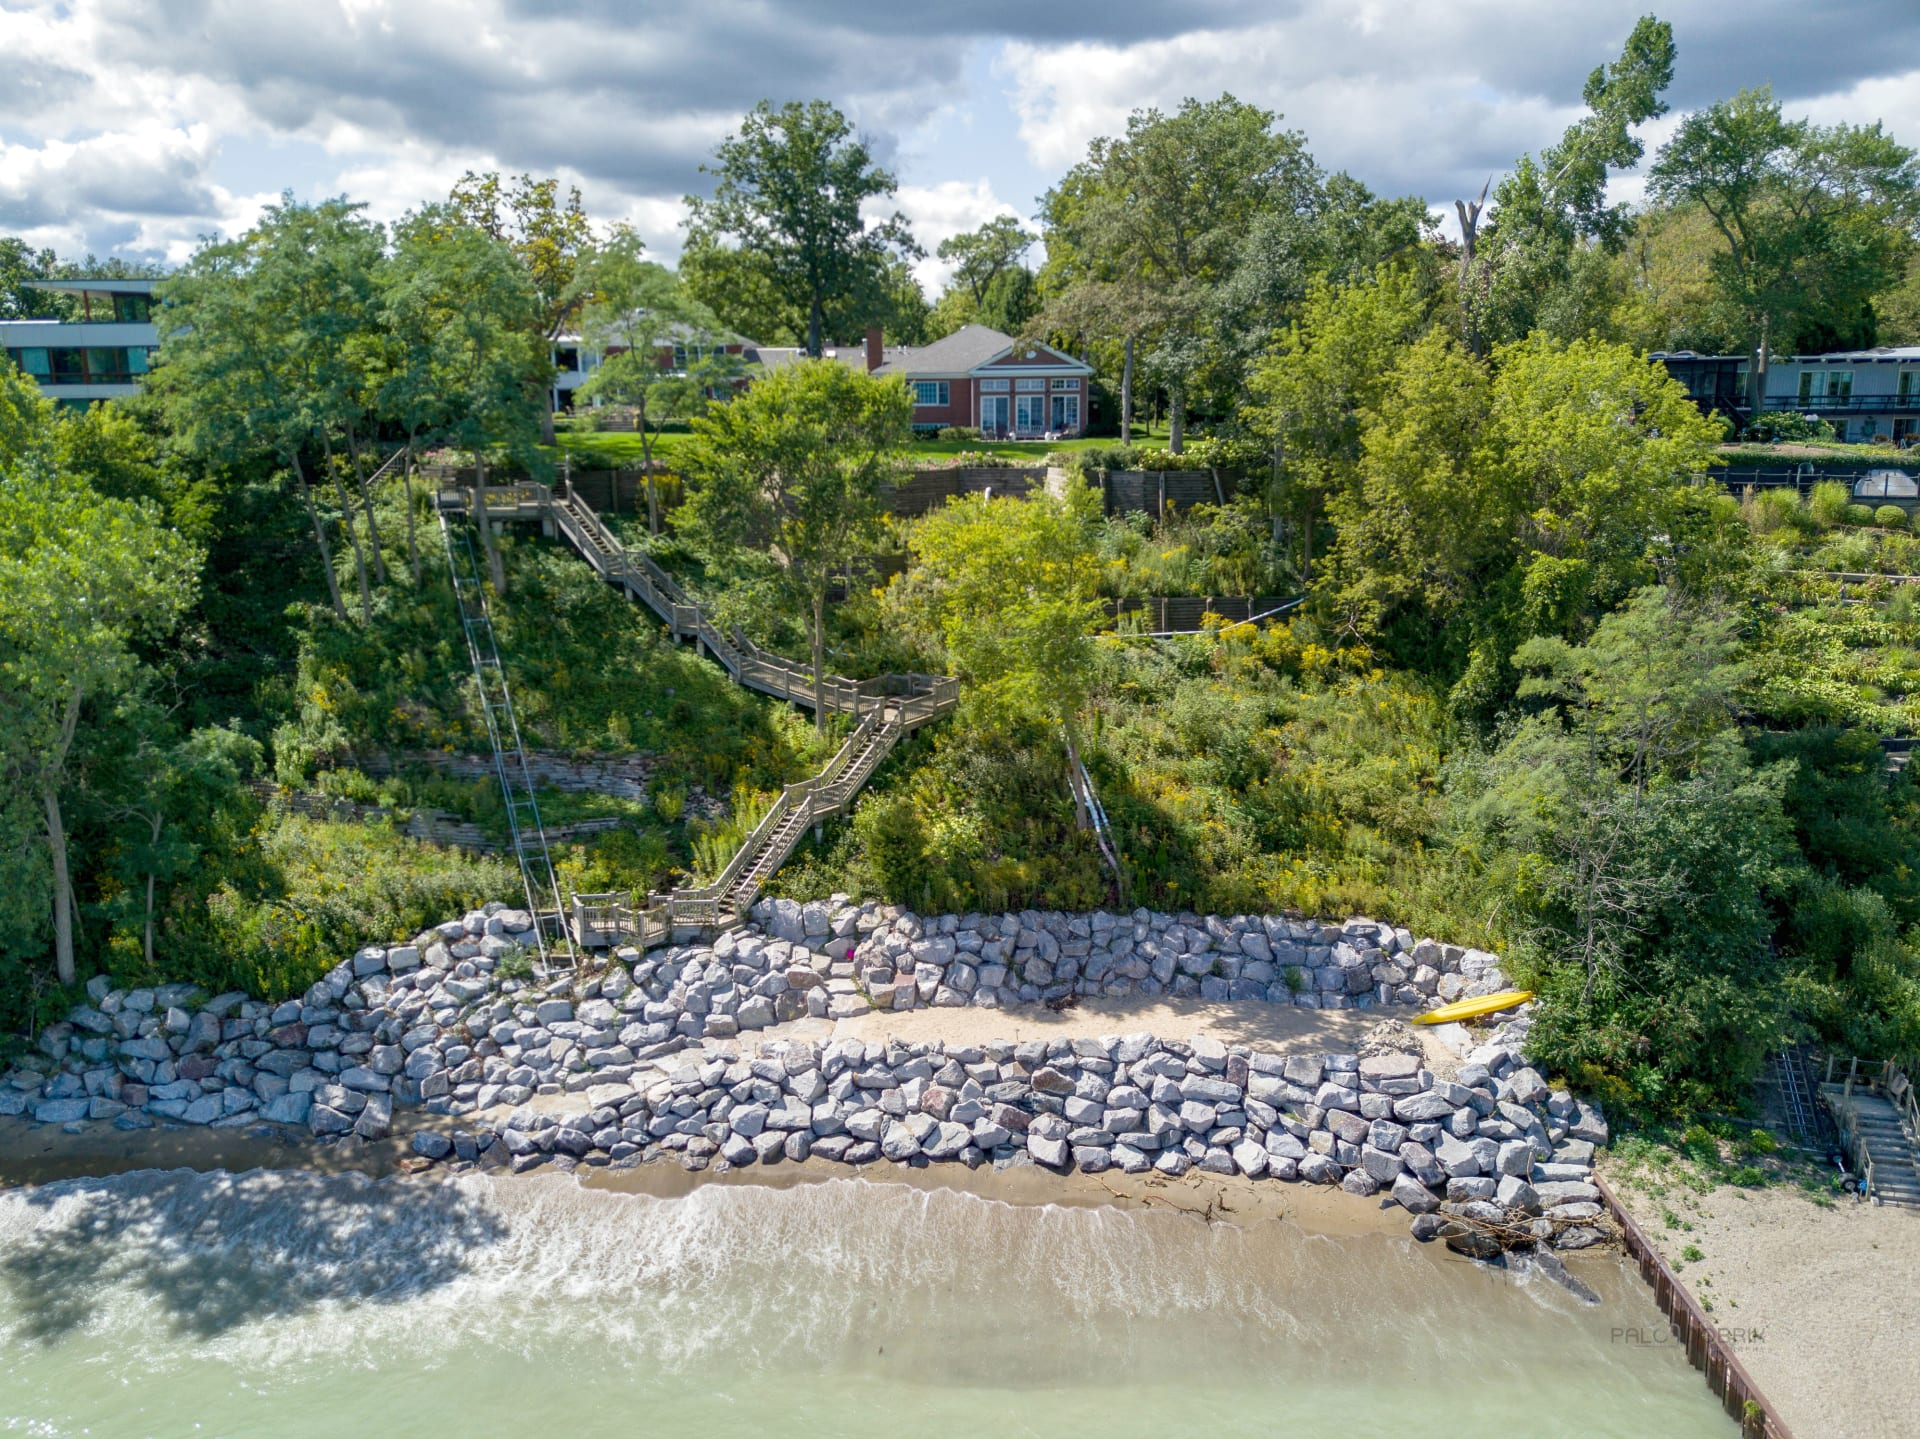 Real Estate: 5 Chicagoland Properties That Offer the Spaciousness You've Been Dreaming About